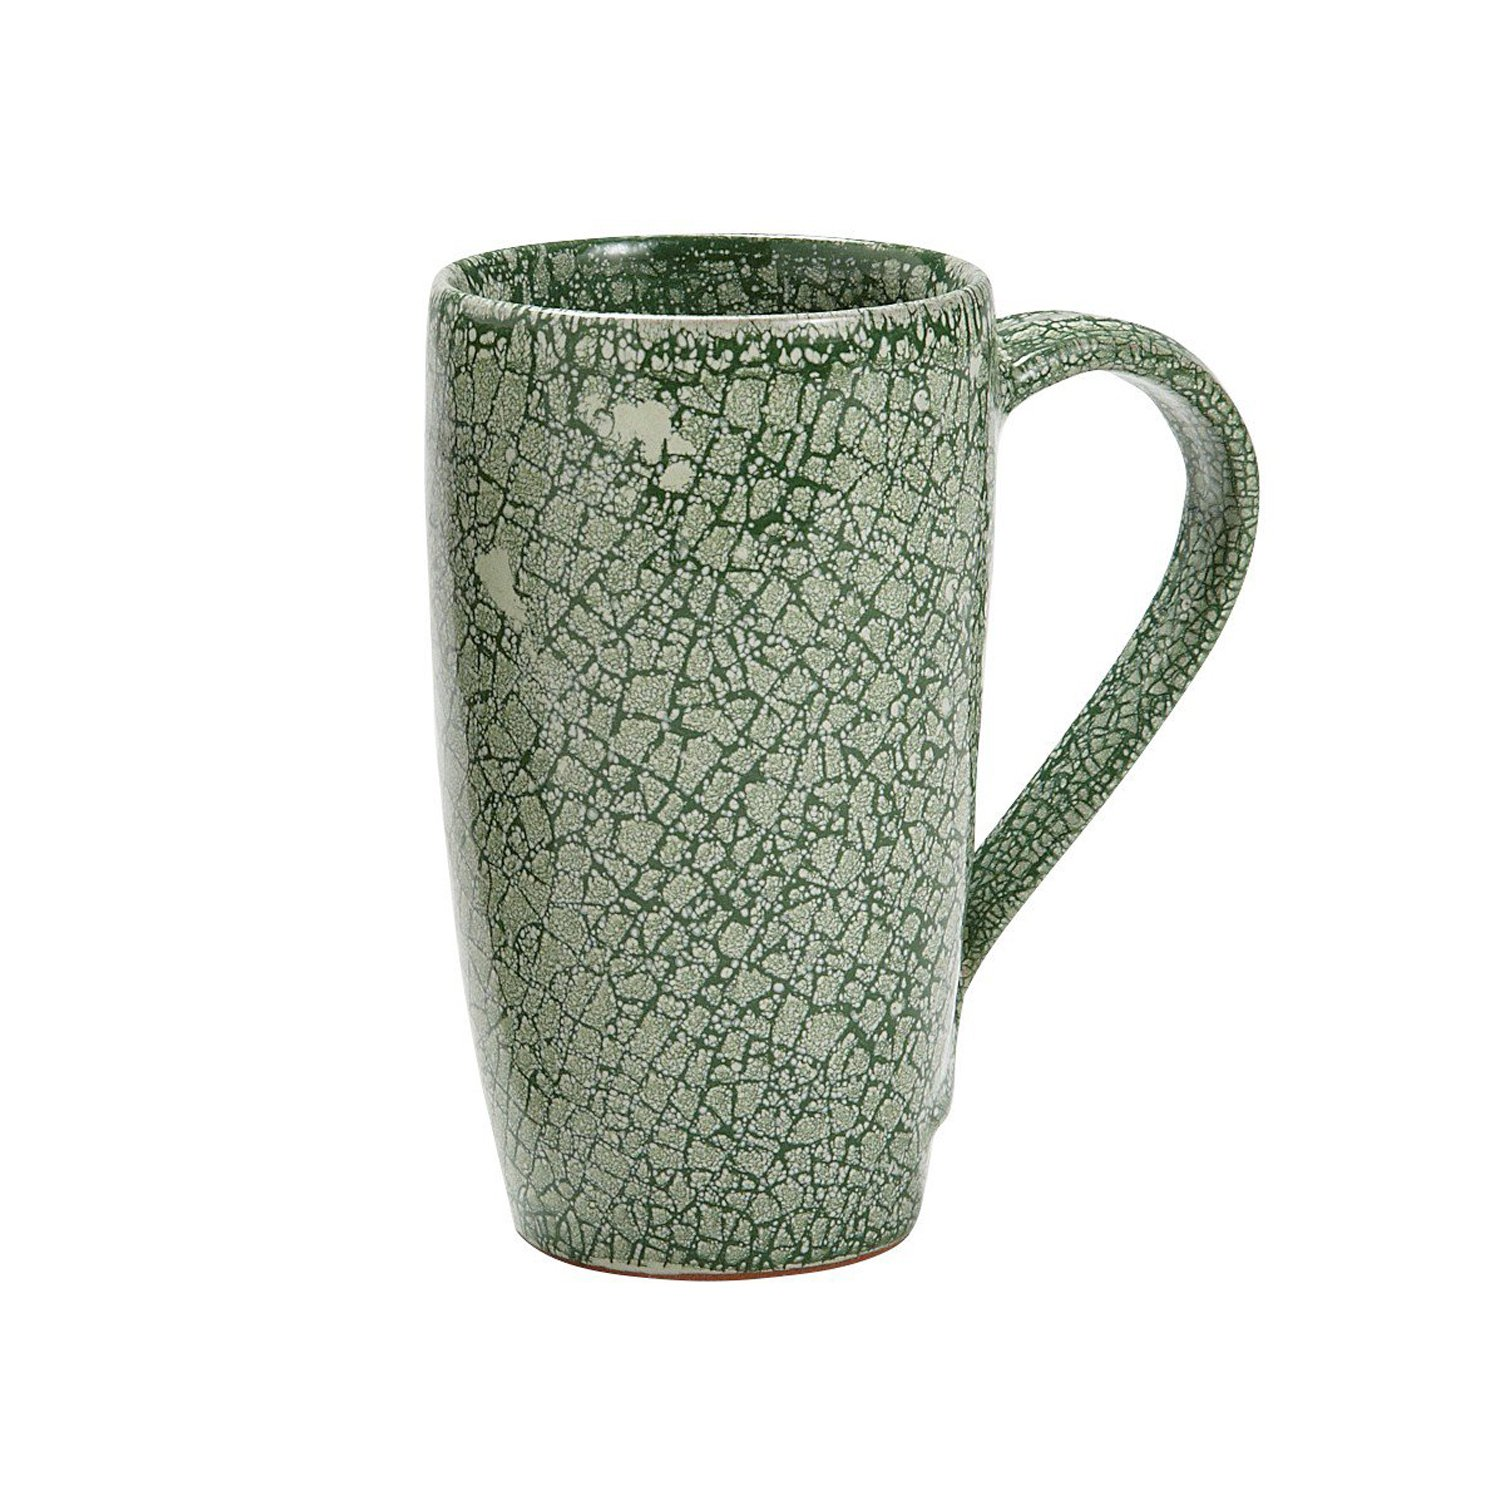 """This handmade """"Mottled Moss"""" Mug from Ten Thousand Villages is ethically made by artisans in Nepal, cermaic, and goes perfectly with the red and white of a candy cane!"""